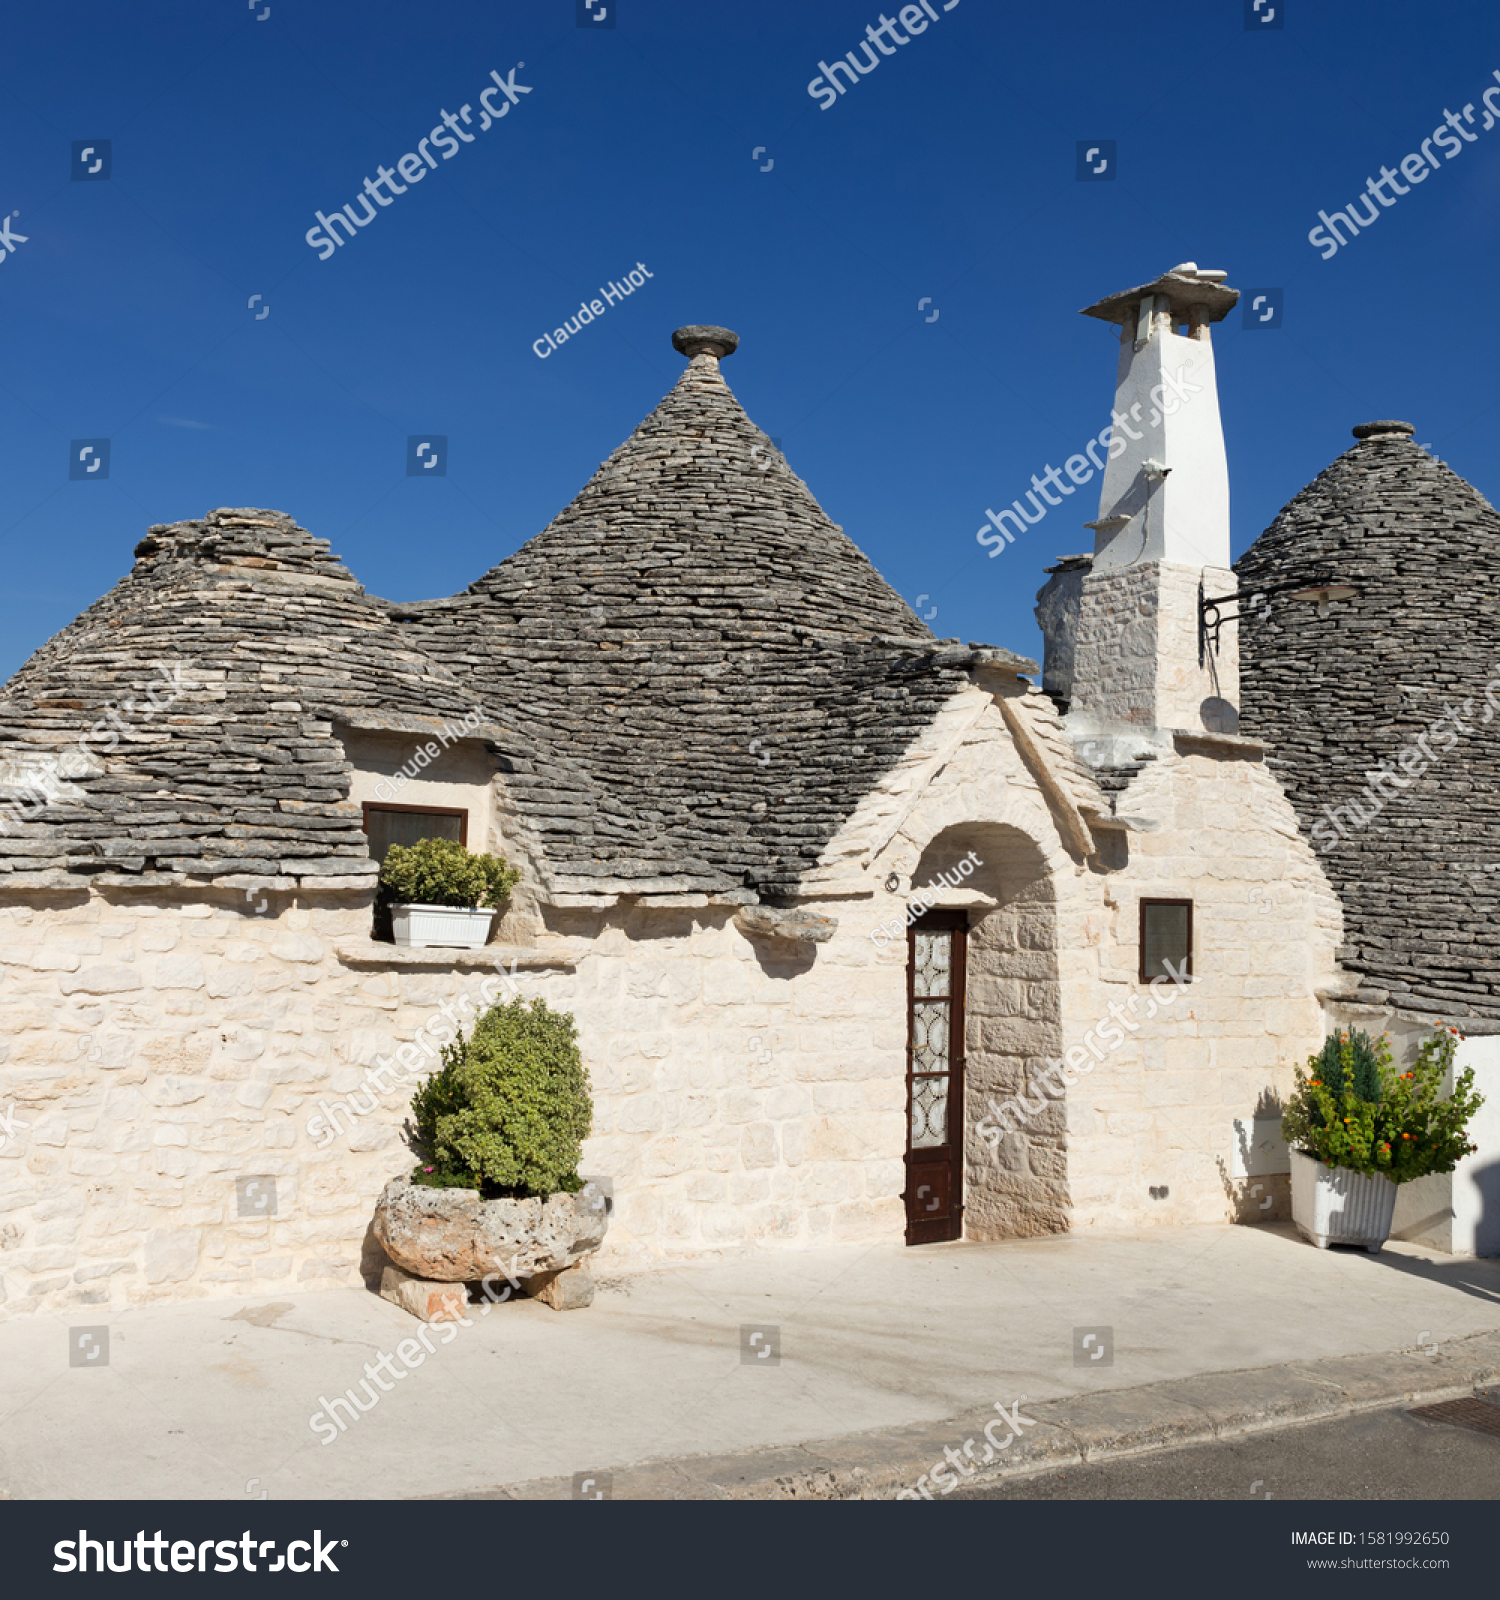 Street view of famous trulli in the town of Alberobello, a small town of the Metropolitan City of Bari, Apulia, Italy. The trulli have been designated as a UNESCO World Heritage site since 1996.